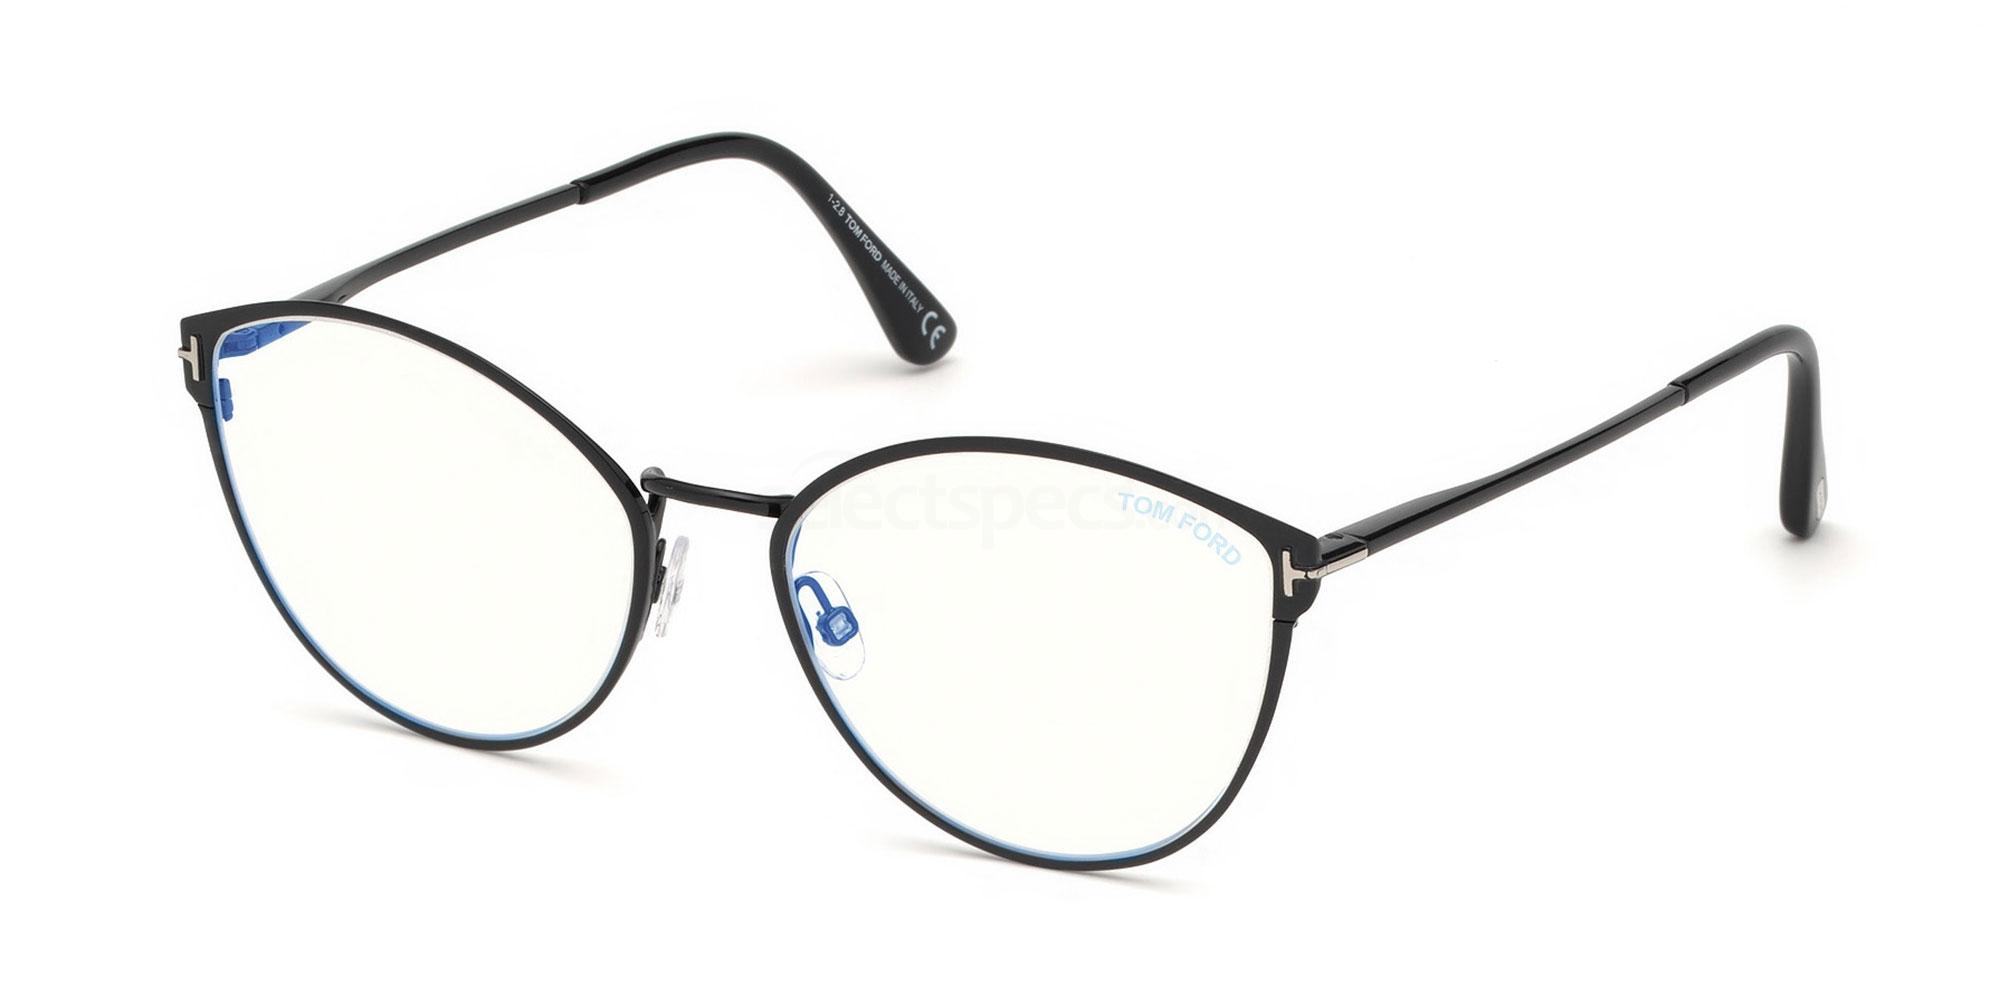 001 FT5573-B Glasses, Tom Ford